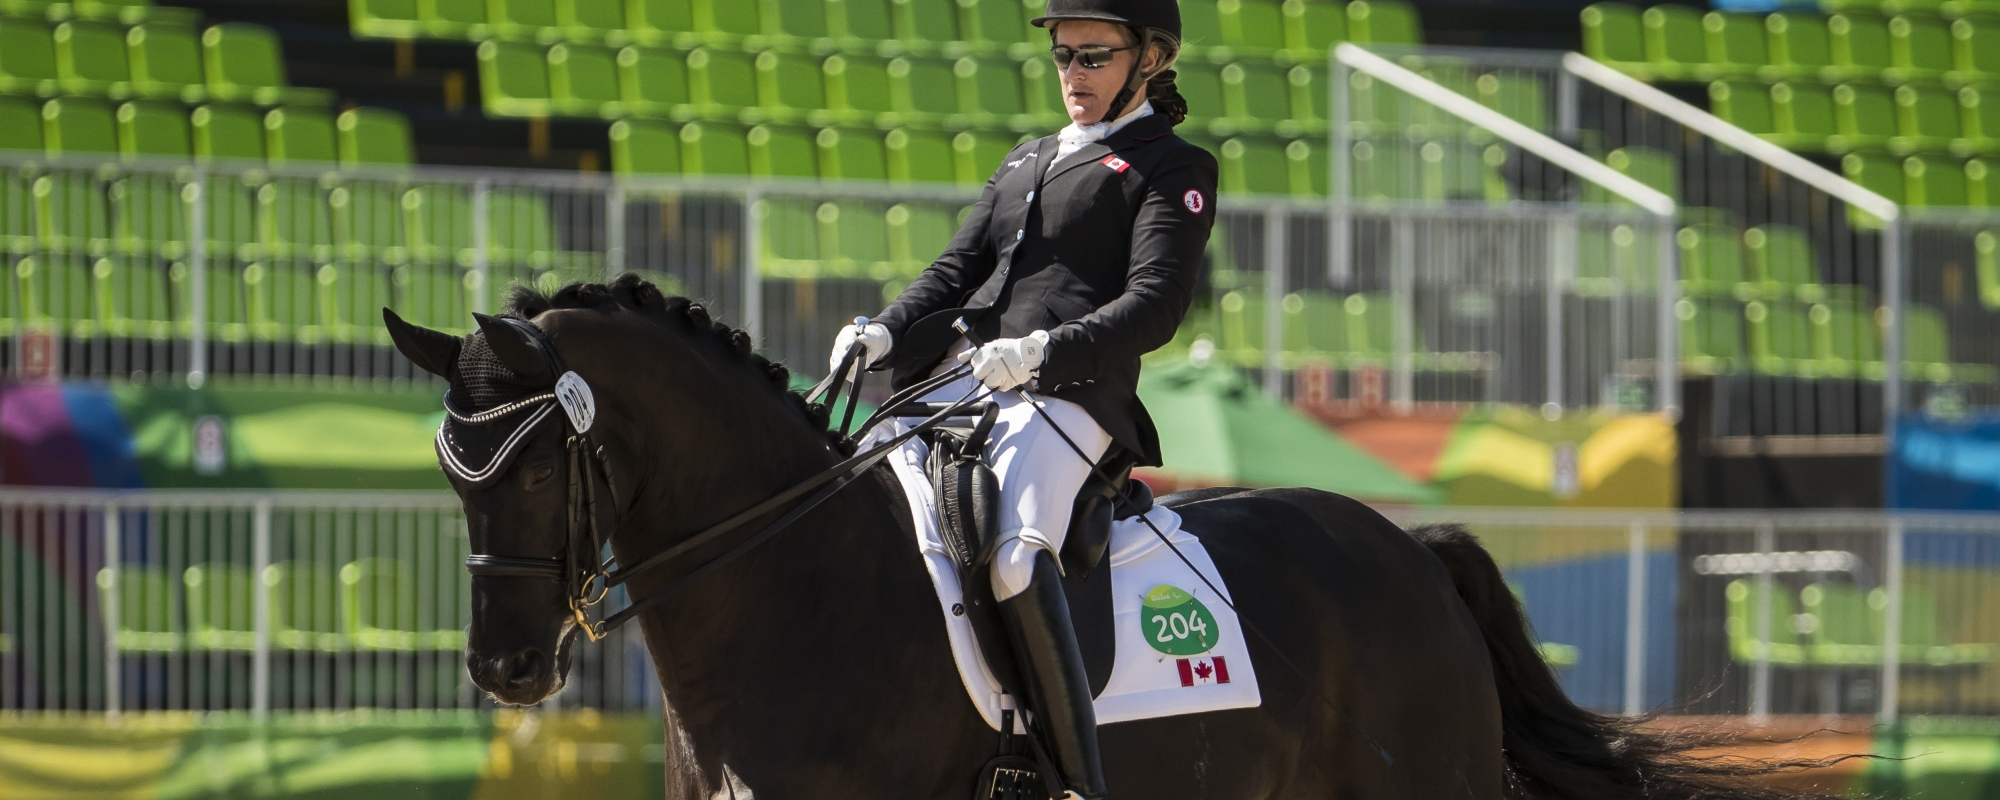 Lauren on her horse in Rio